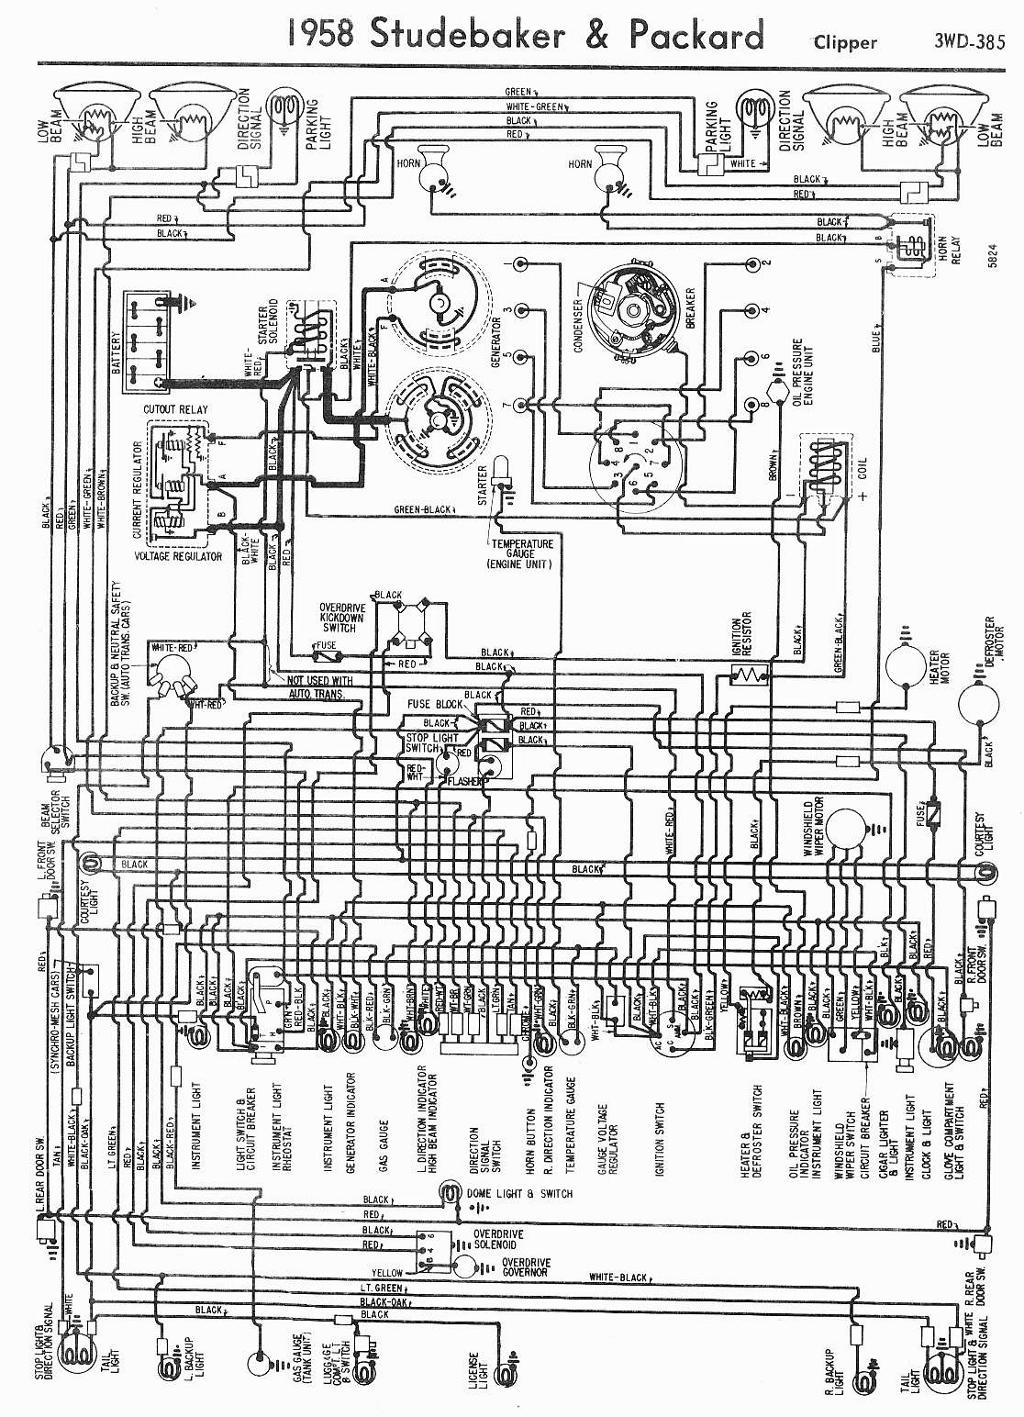 1958 Jeep Cj5 Wiring Schematic Ford Ranchero Diagram Books Of 1961 Diagrams Jk